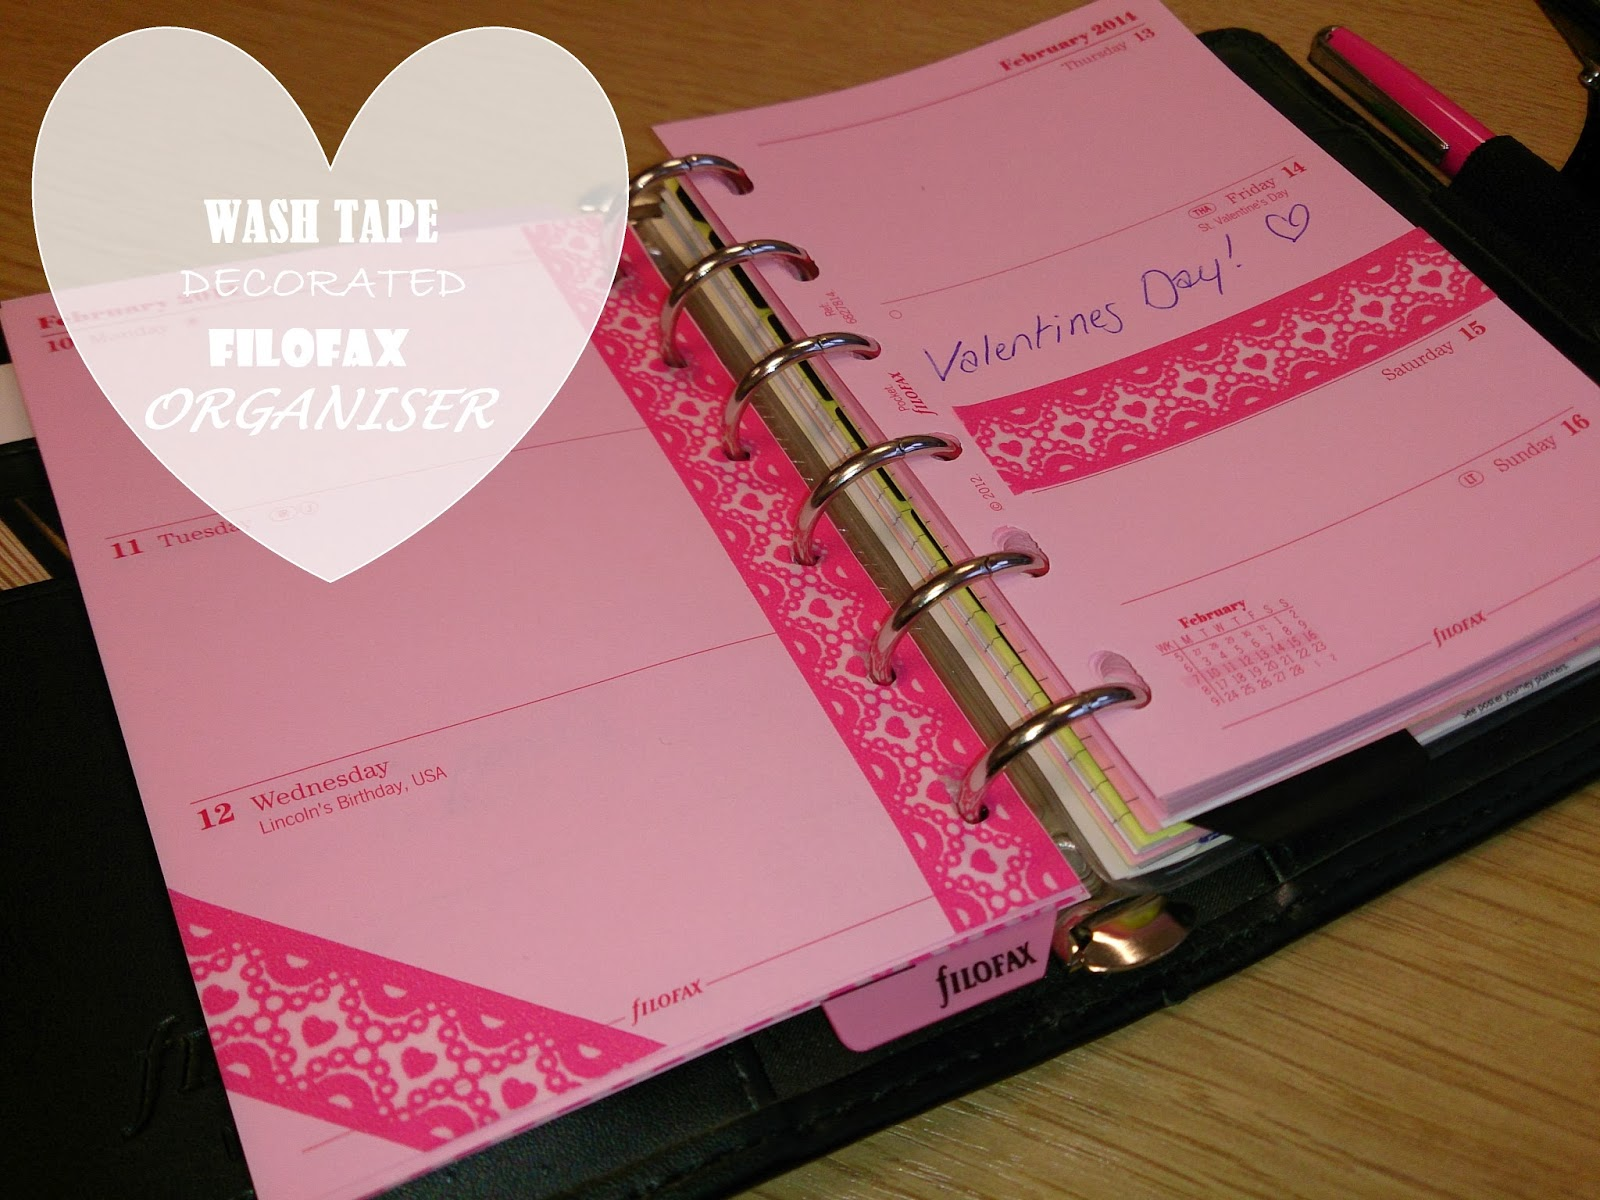 filofax organiser diary washi tape decorate organise pink black valentines day calendar